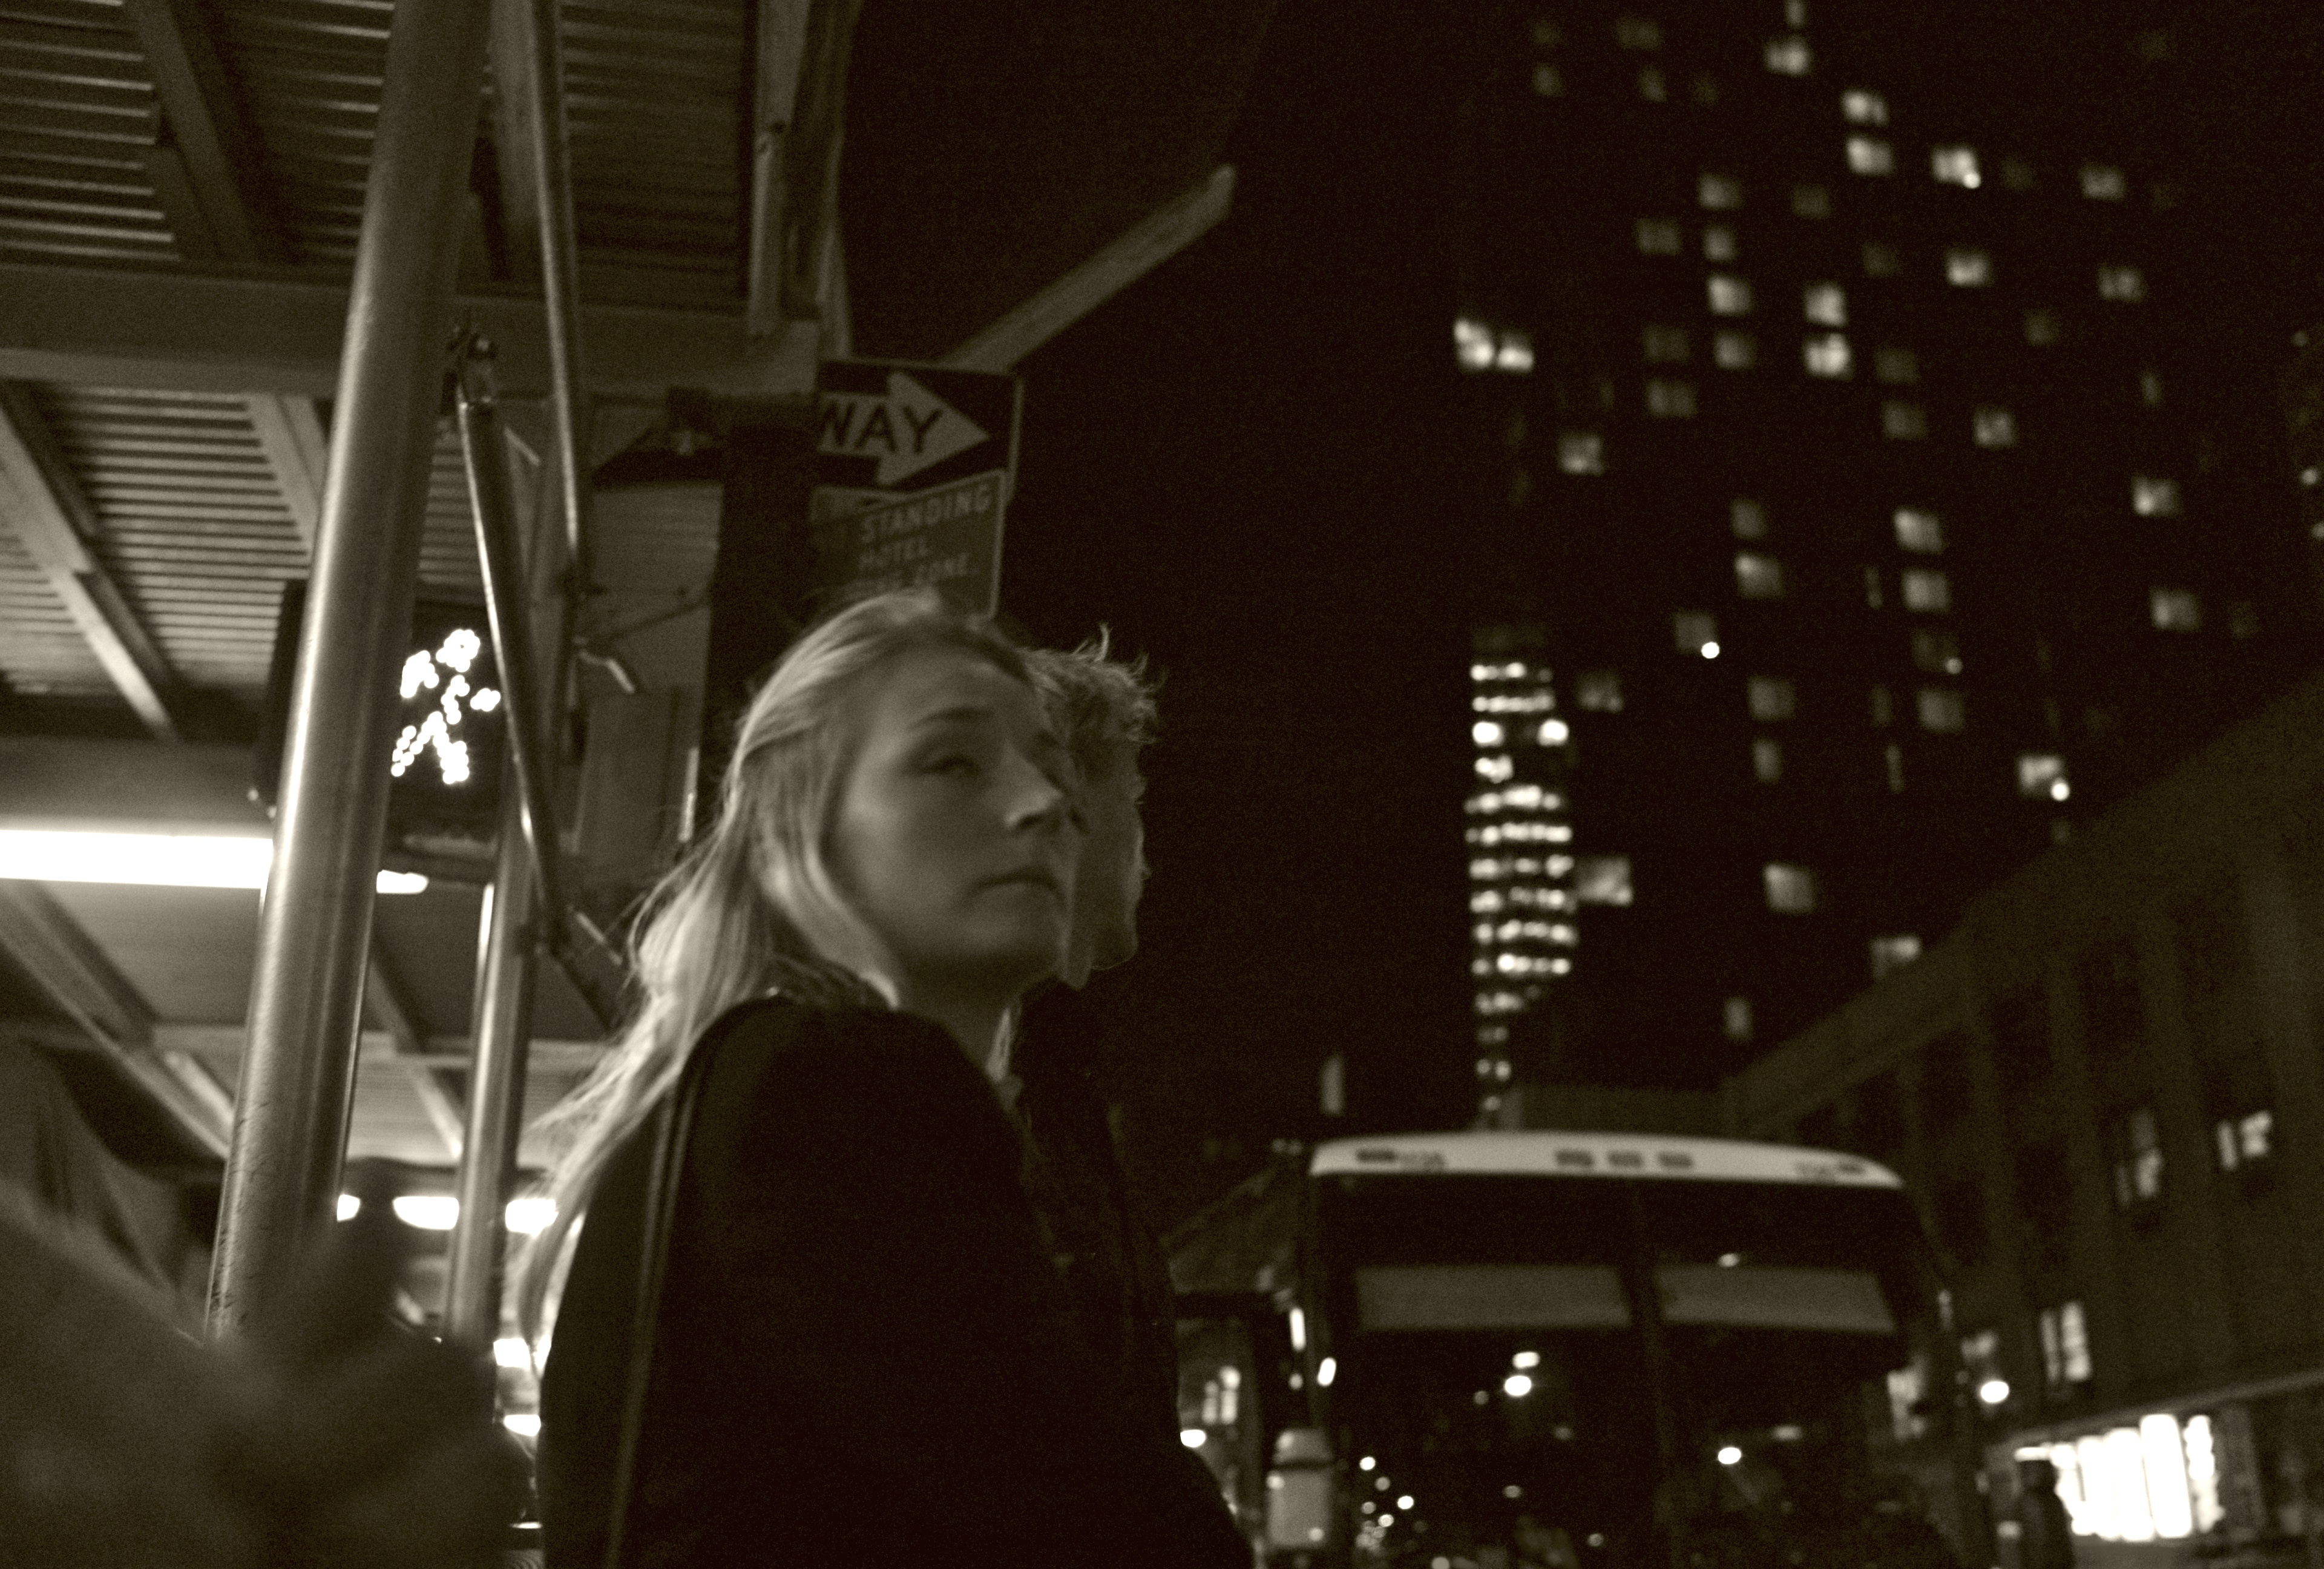 NYC Street Series. By Paul Goldfinger